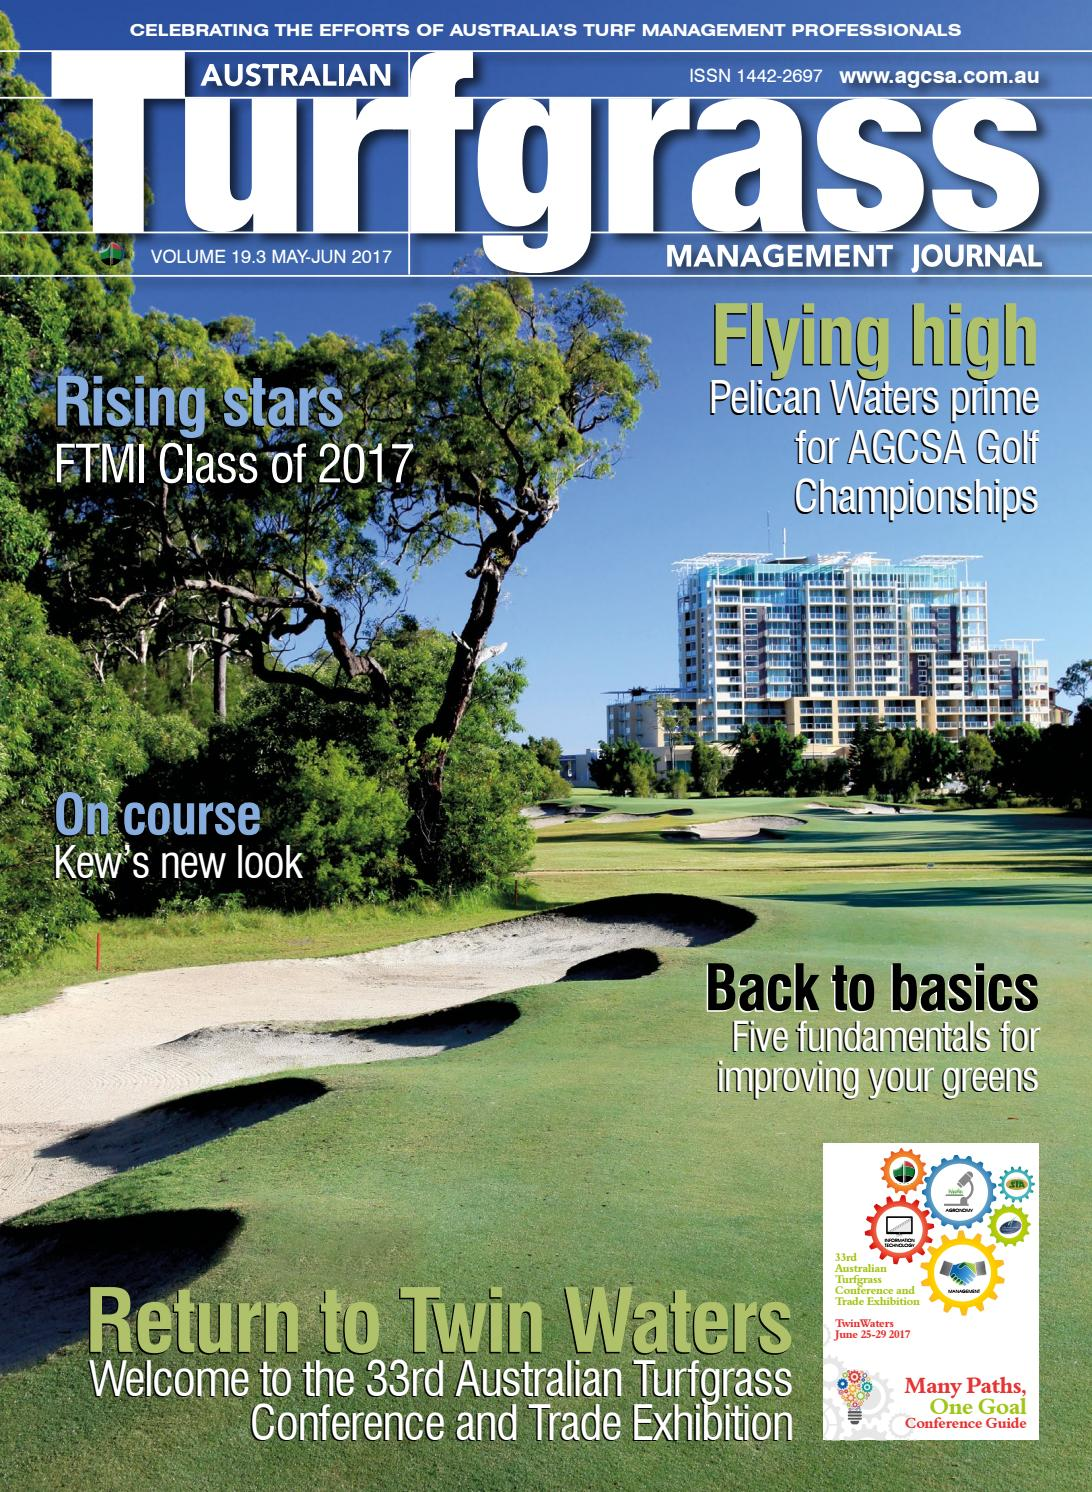 Australian Turfgrass Management Journal Volume 193 May June 2017 93 Plymouth Acclaim Wiring Diagram By Agcsa Issuu